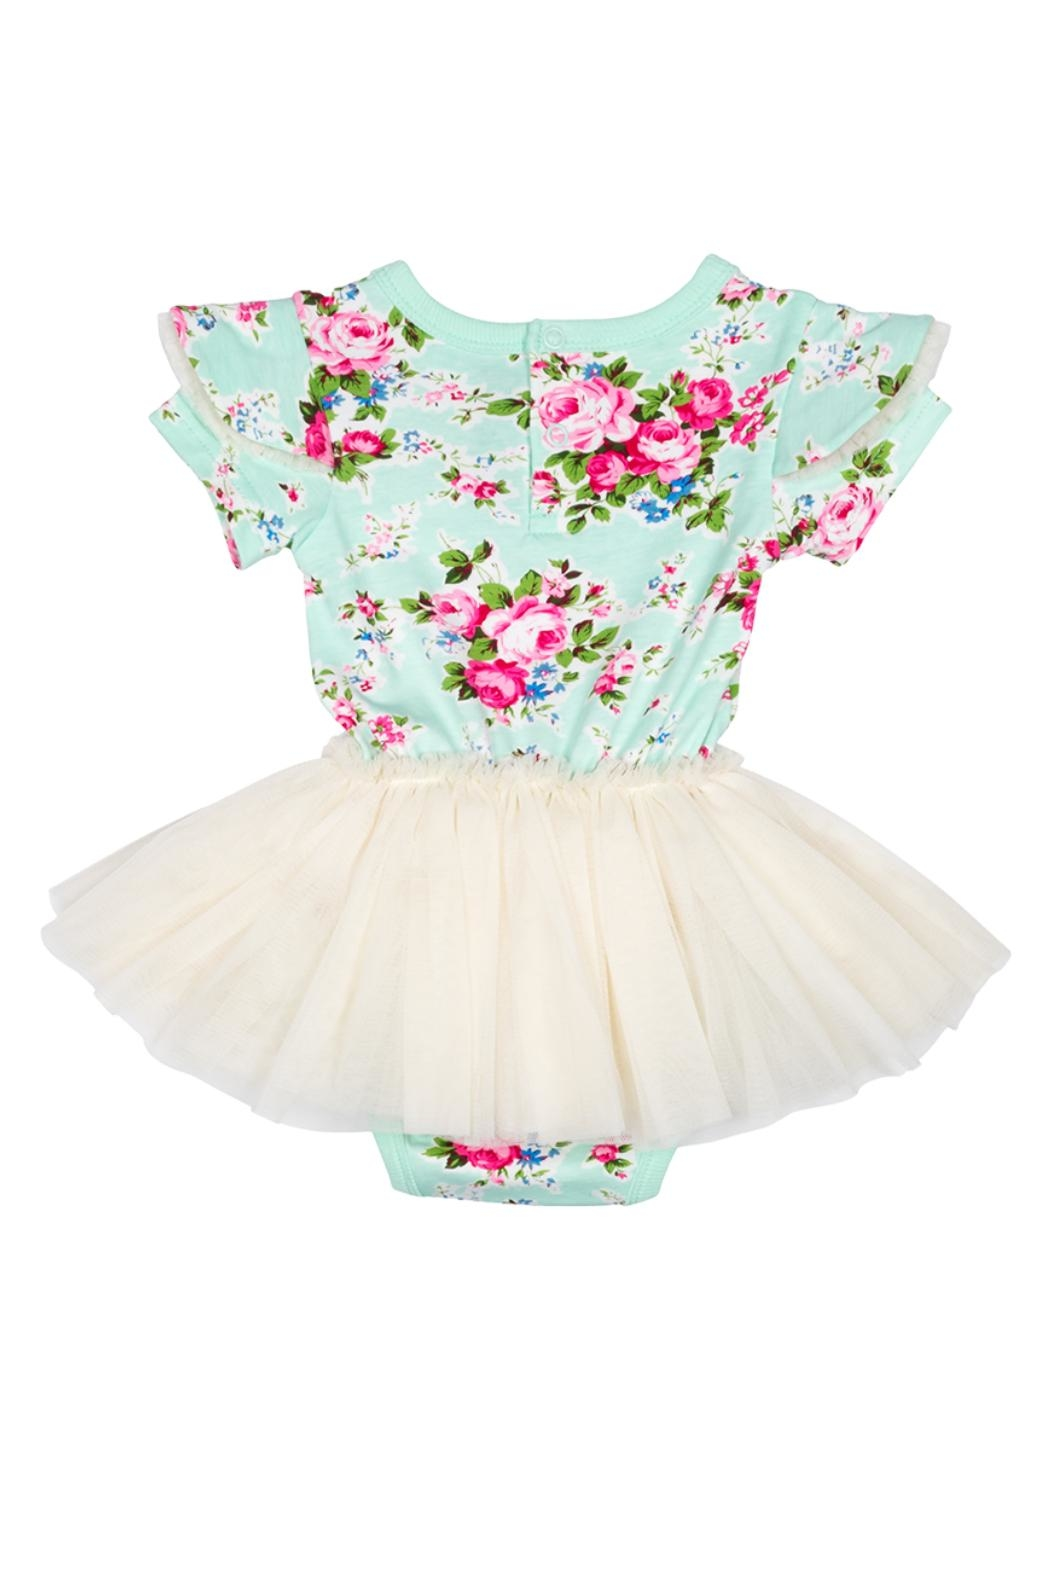 Rock Your Baby Maeve Circus Dress From Ireland By Mira